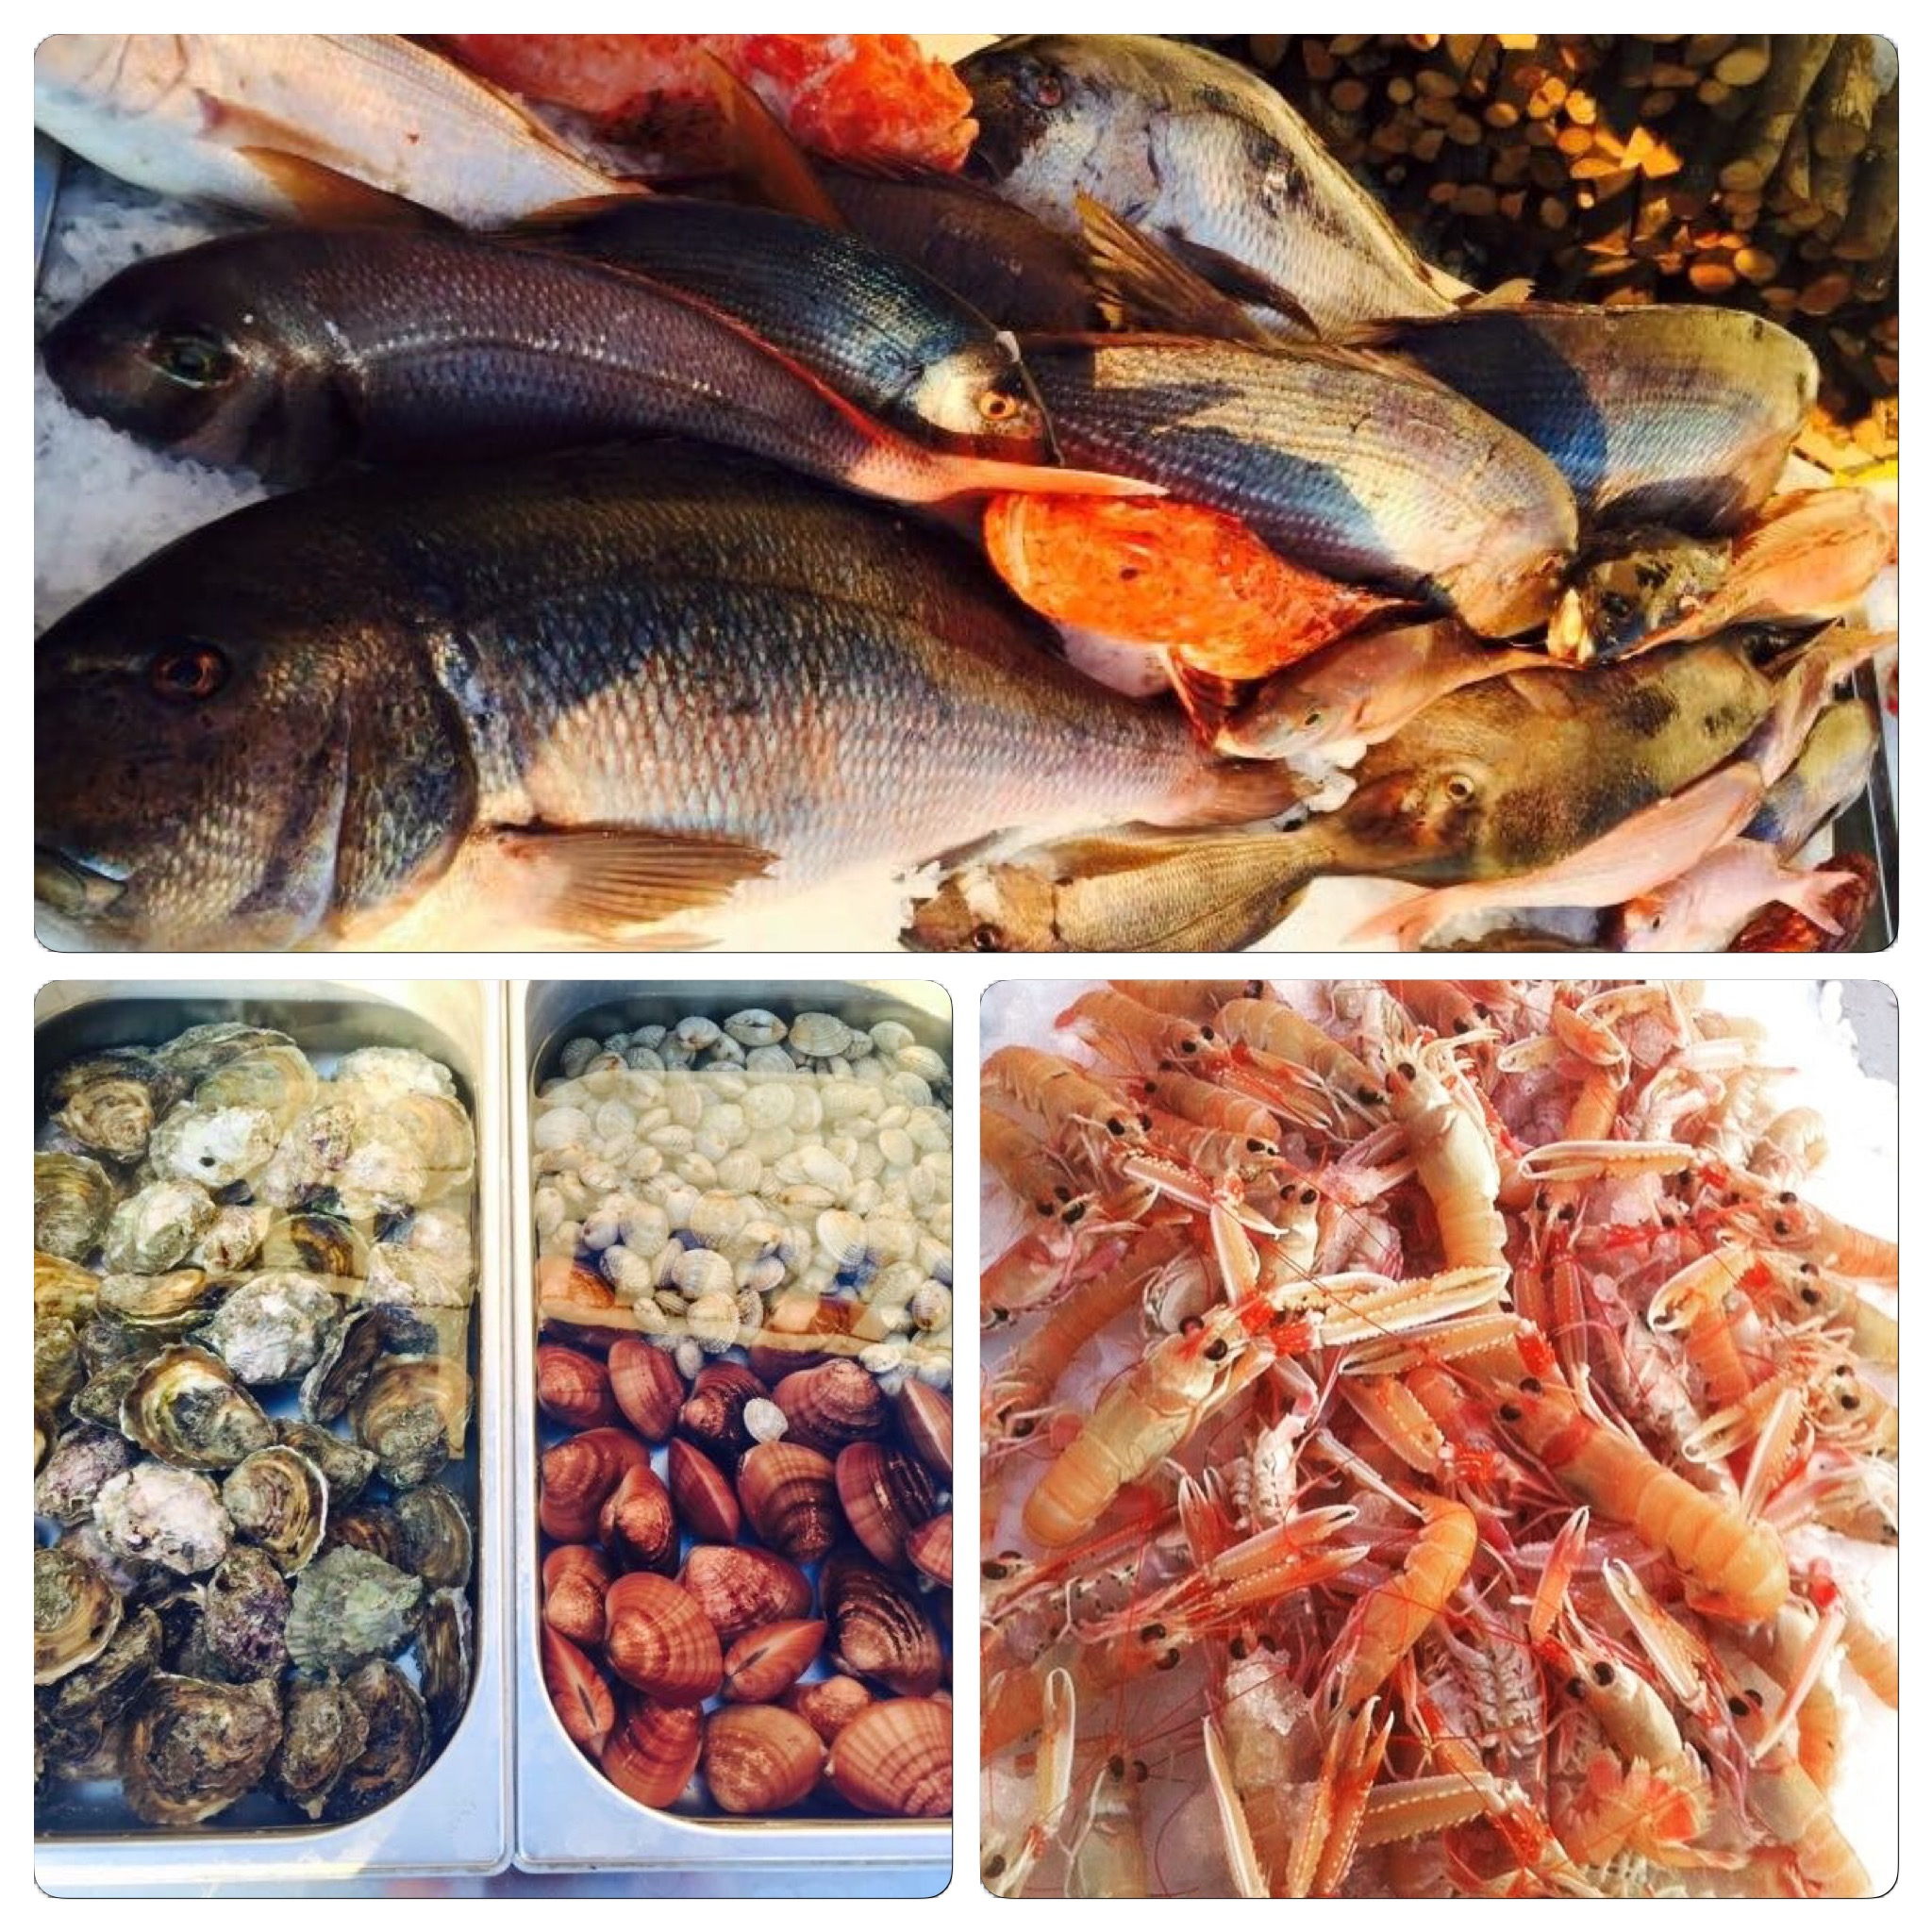 All health benefits of Gariful seafood for beauty and vitality